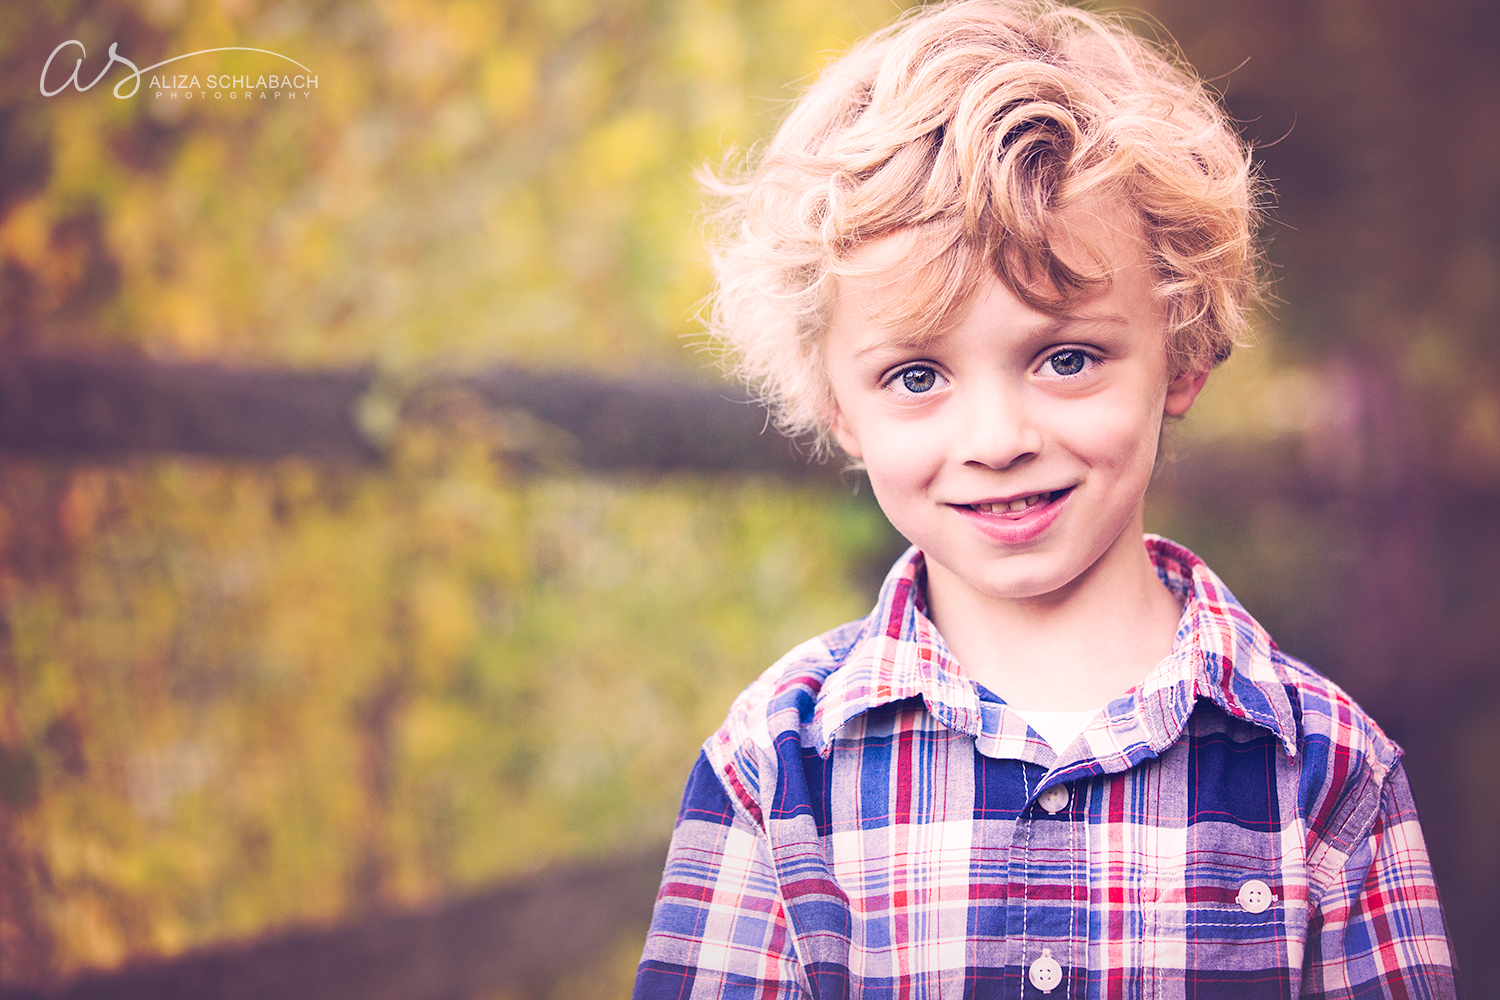 Portrait of an adorable boy with curly hair near a fence